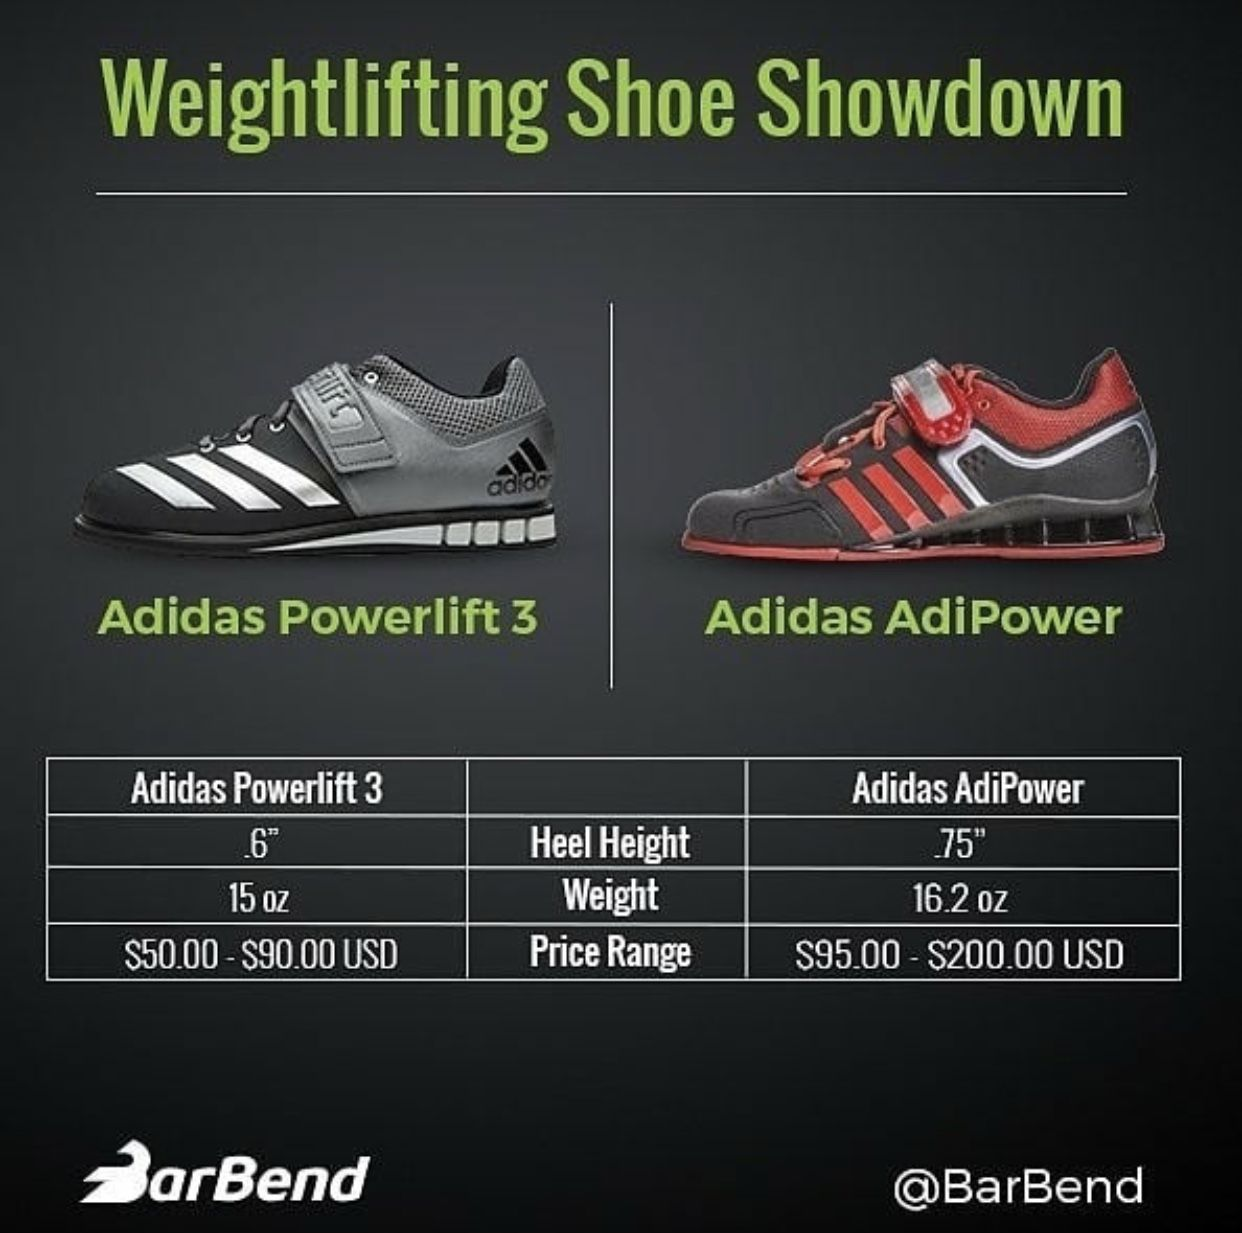 Pin by BarBend on BarBend Infographics | Adidas sneakers